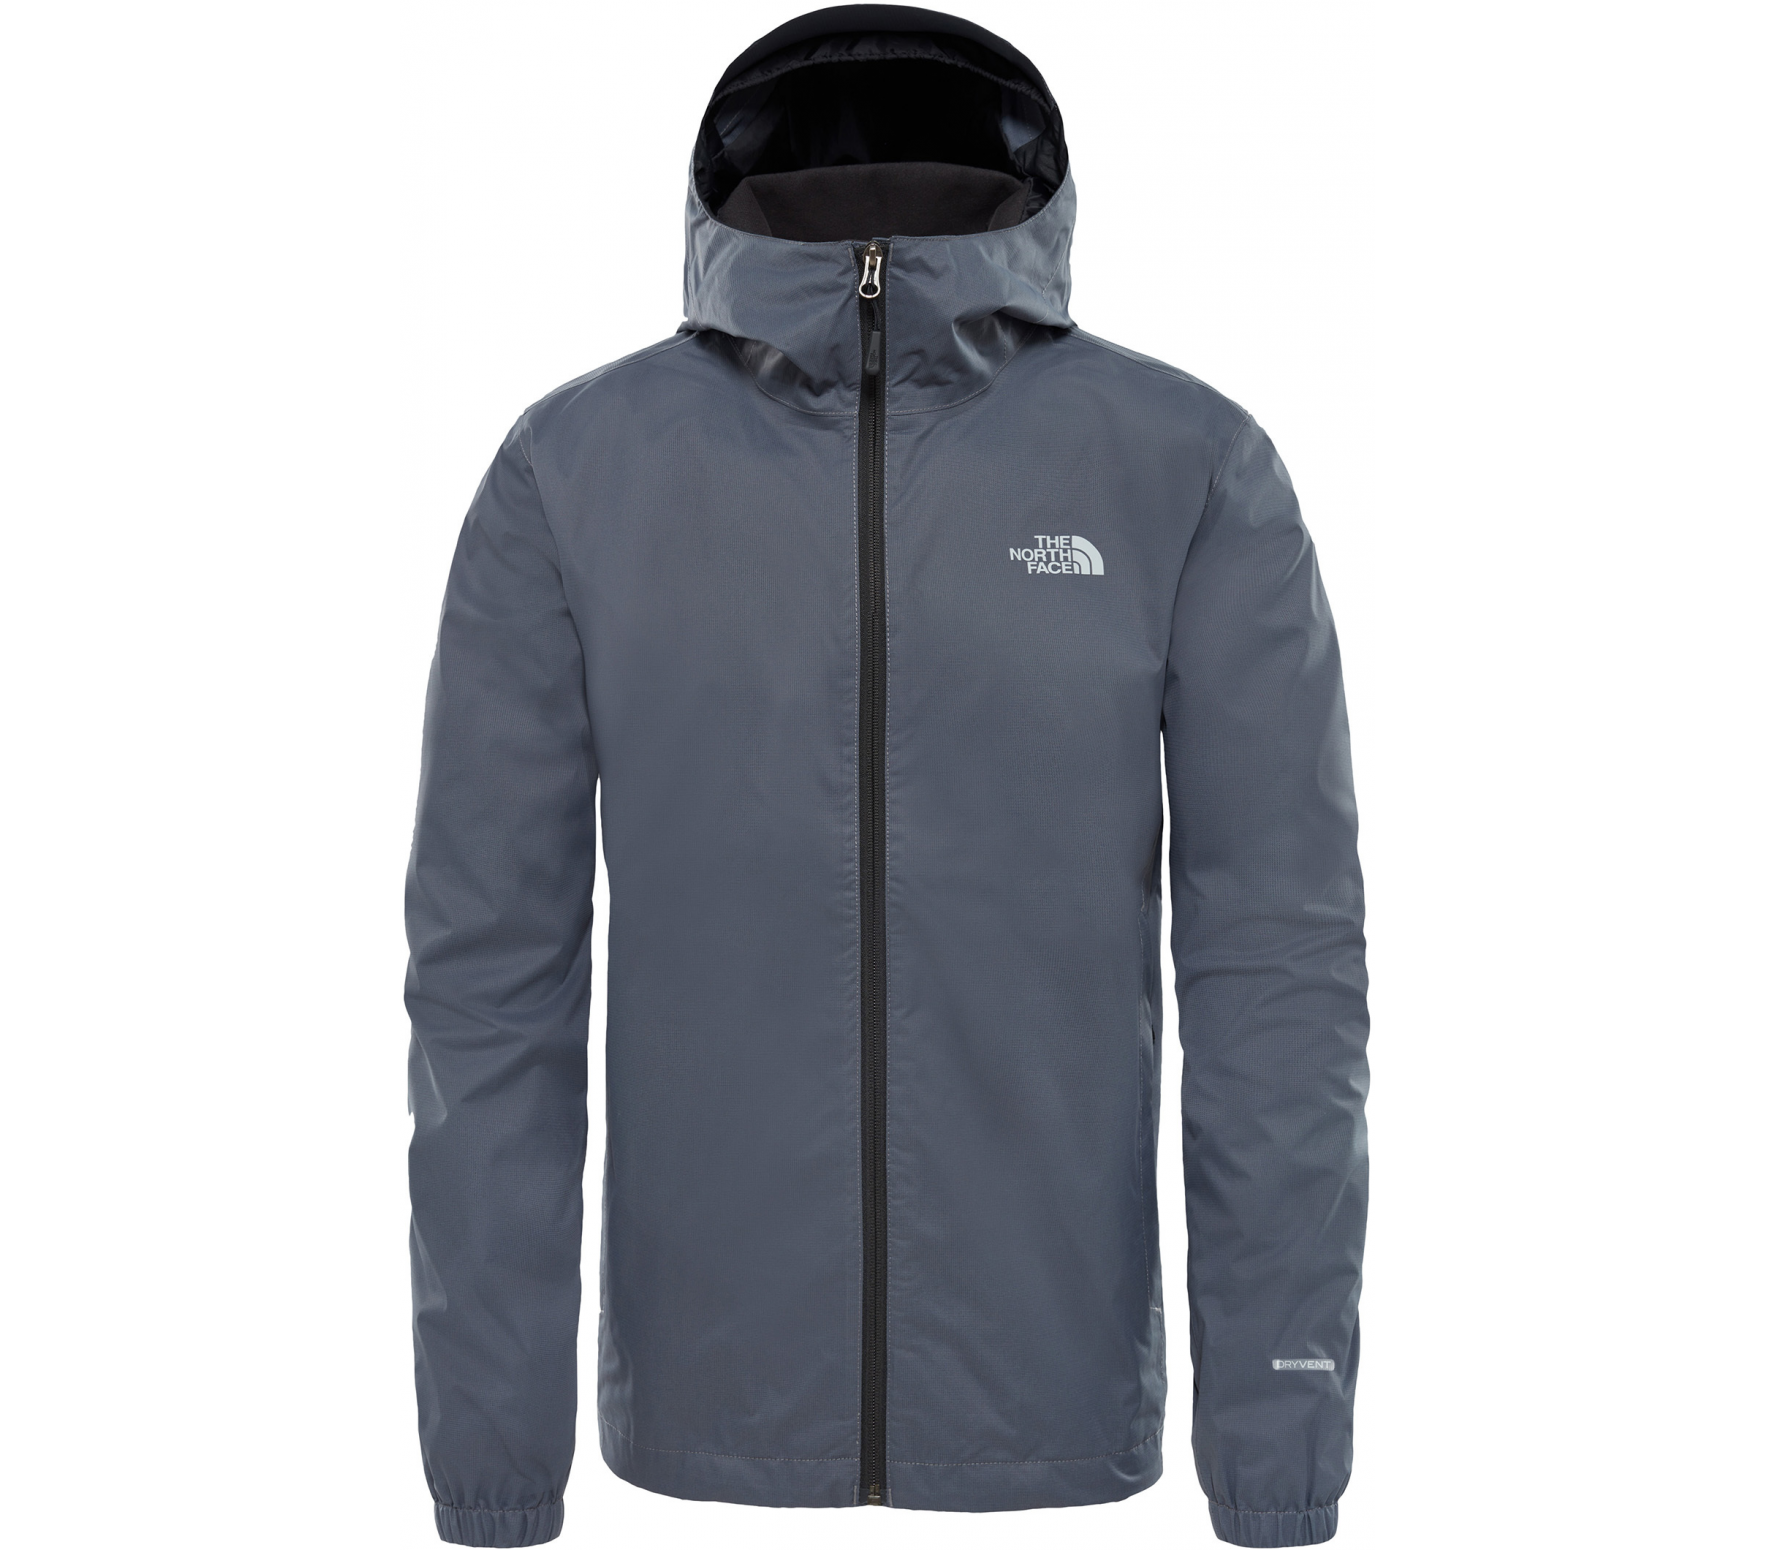 The North Face - Quest men's functional jacket (grey)